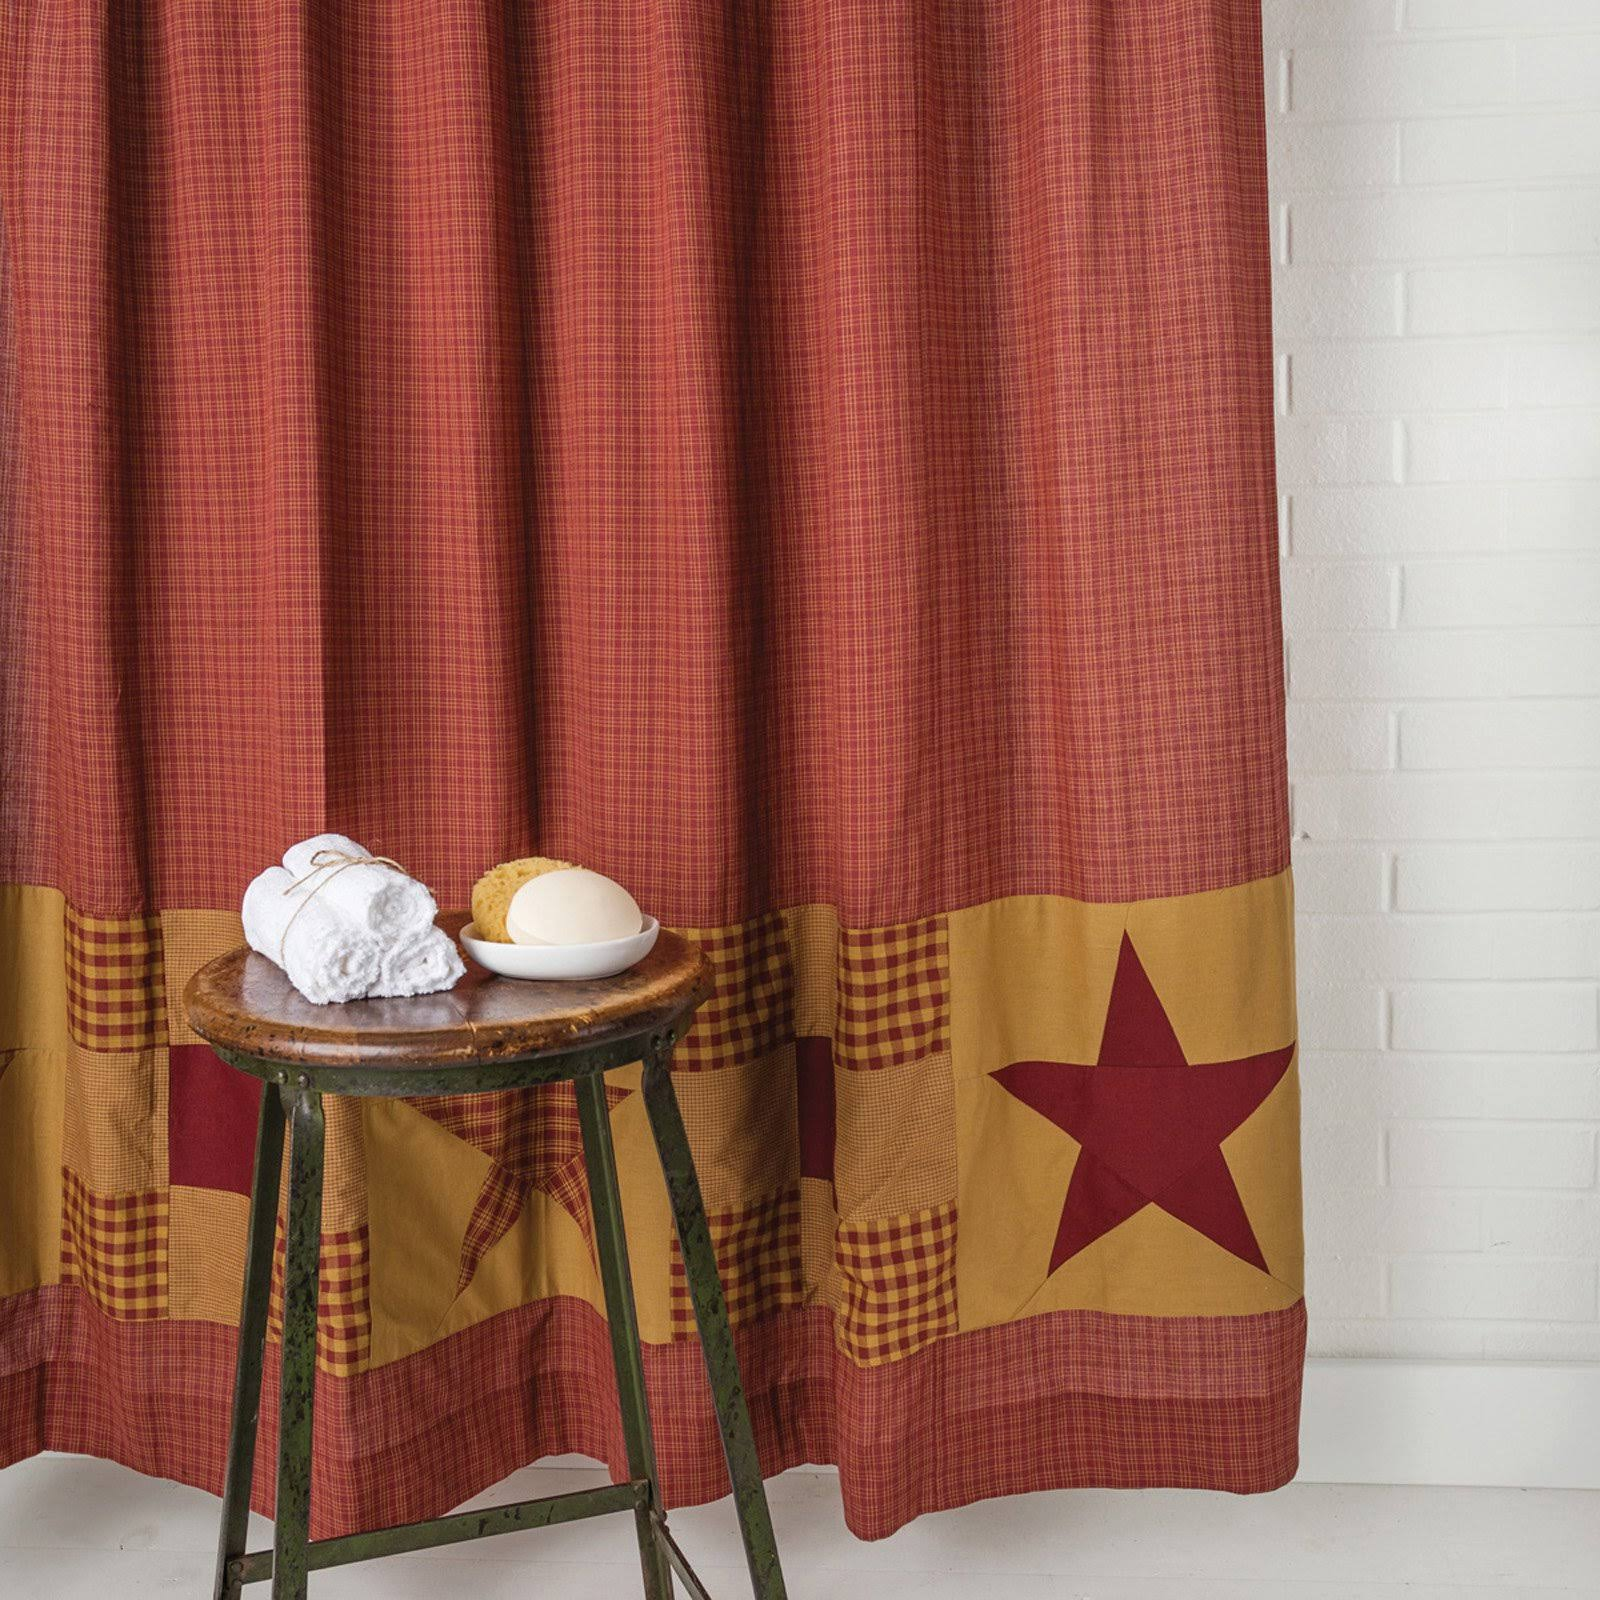 Ninepatch Star Shower Curtain w/ Patchwork Borders